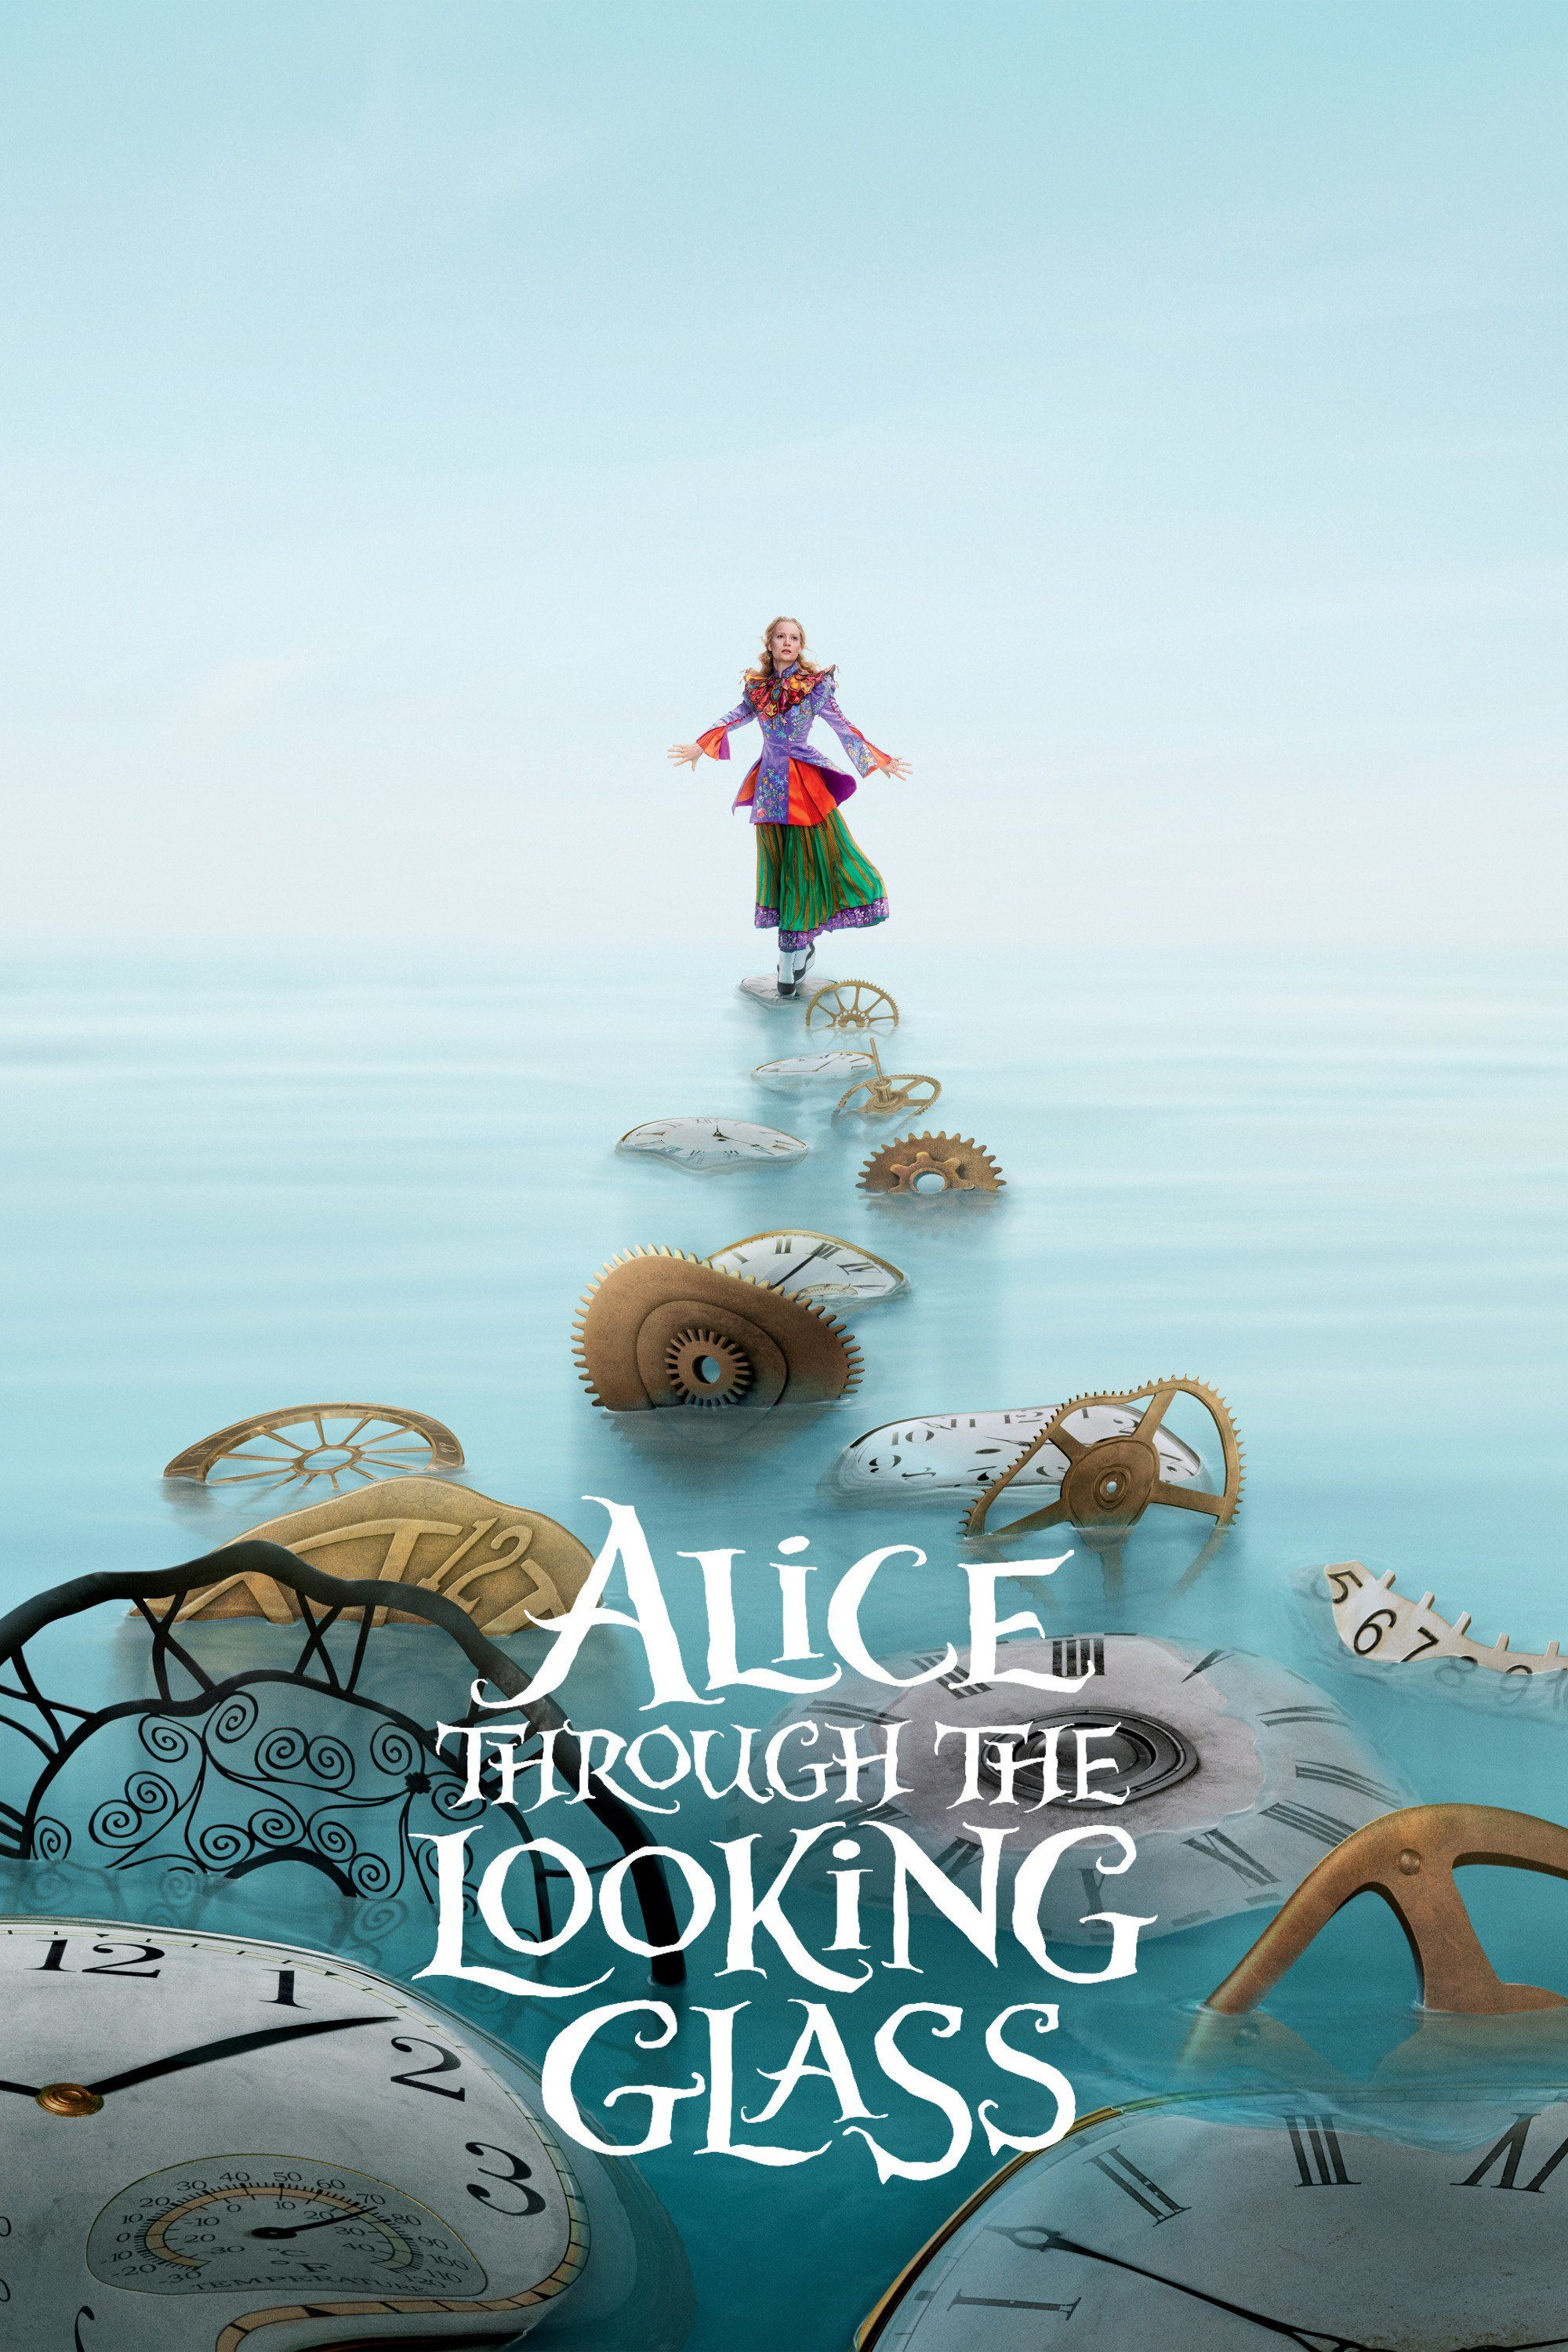 Alice in wonderland movie online free